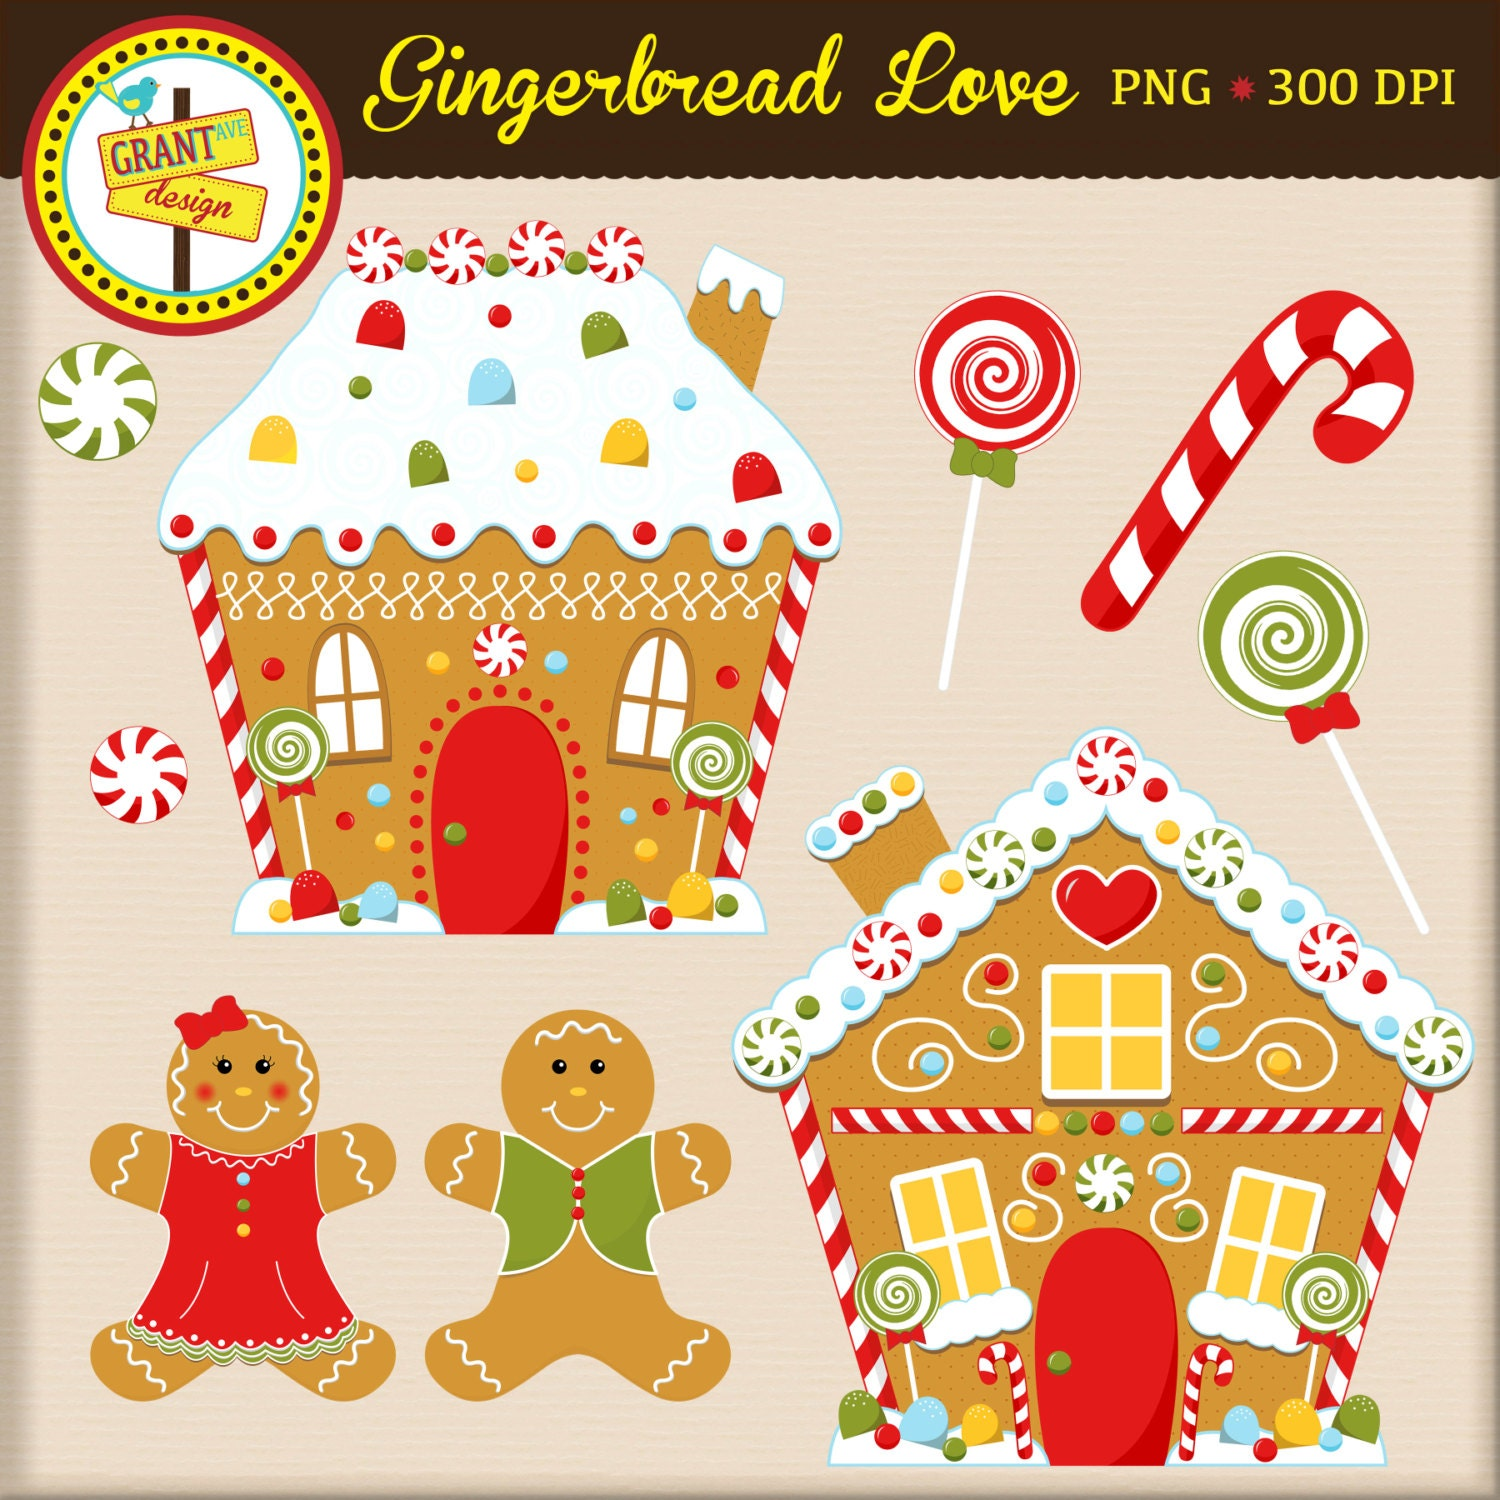 gingerbread clipart gingerbread houses and people clip art rh etsy com gingerbread house candy clip art gingerbread house door clip art